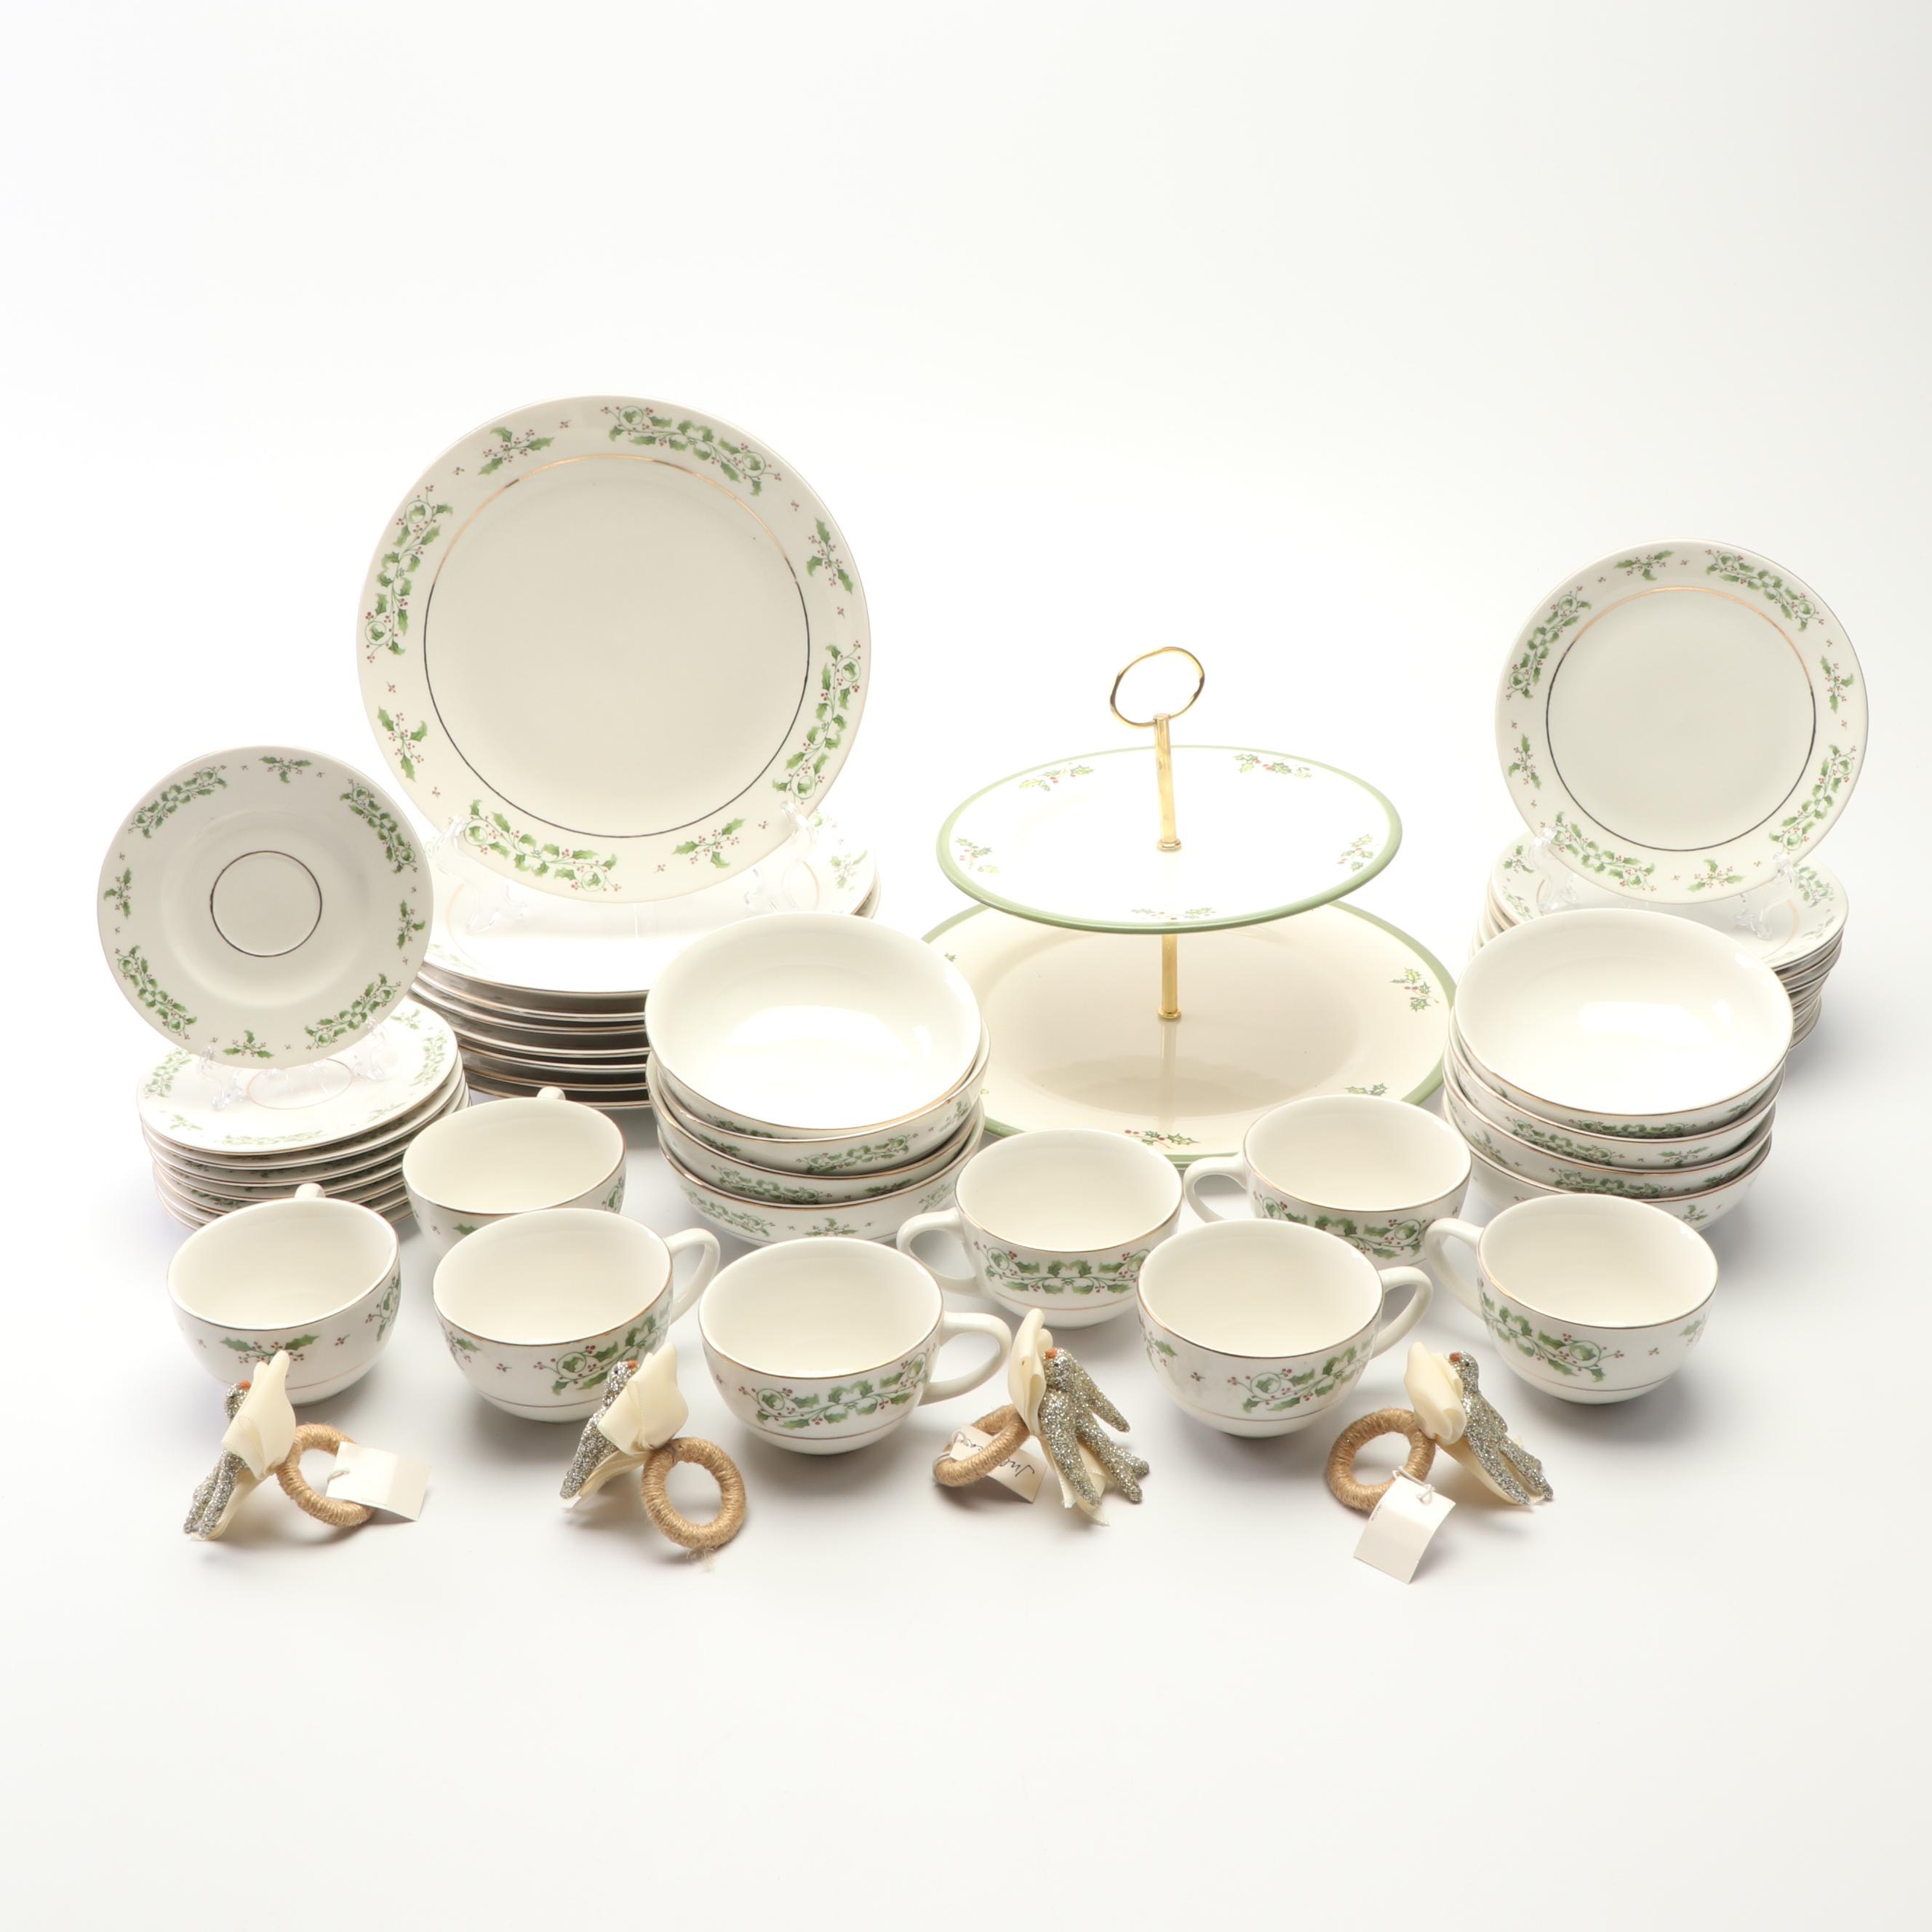 Christopher Radko and Gibson Holly Motif Tableware with Juliska Napkin Rings